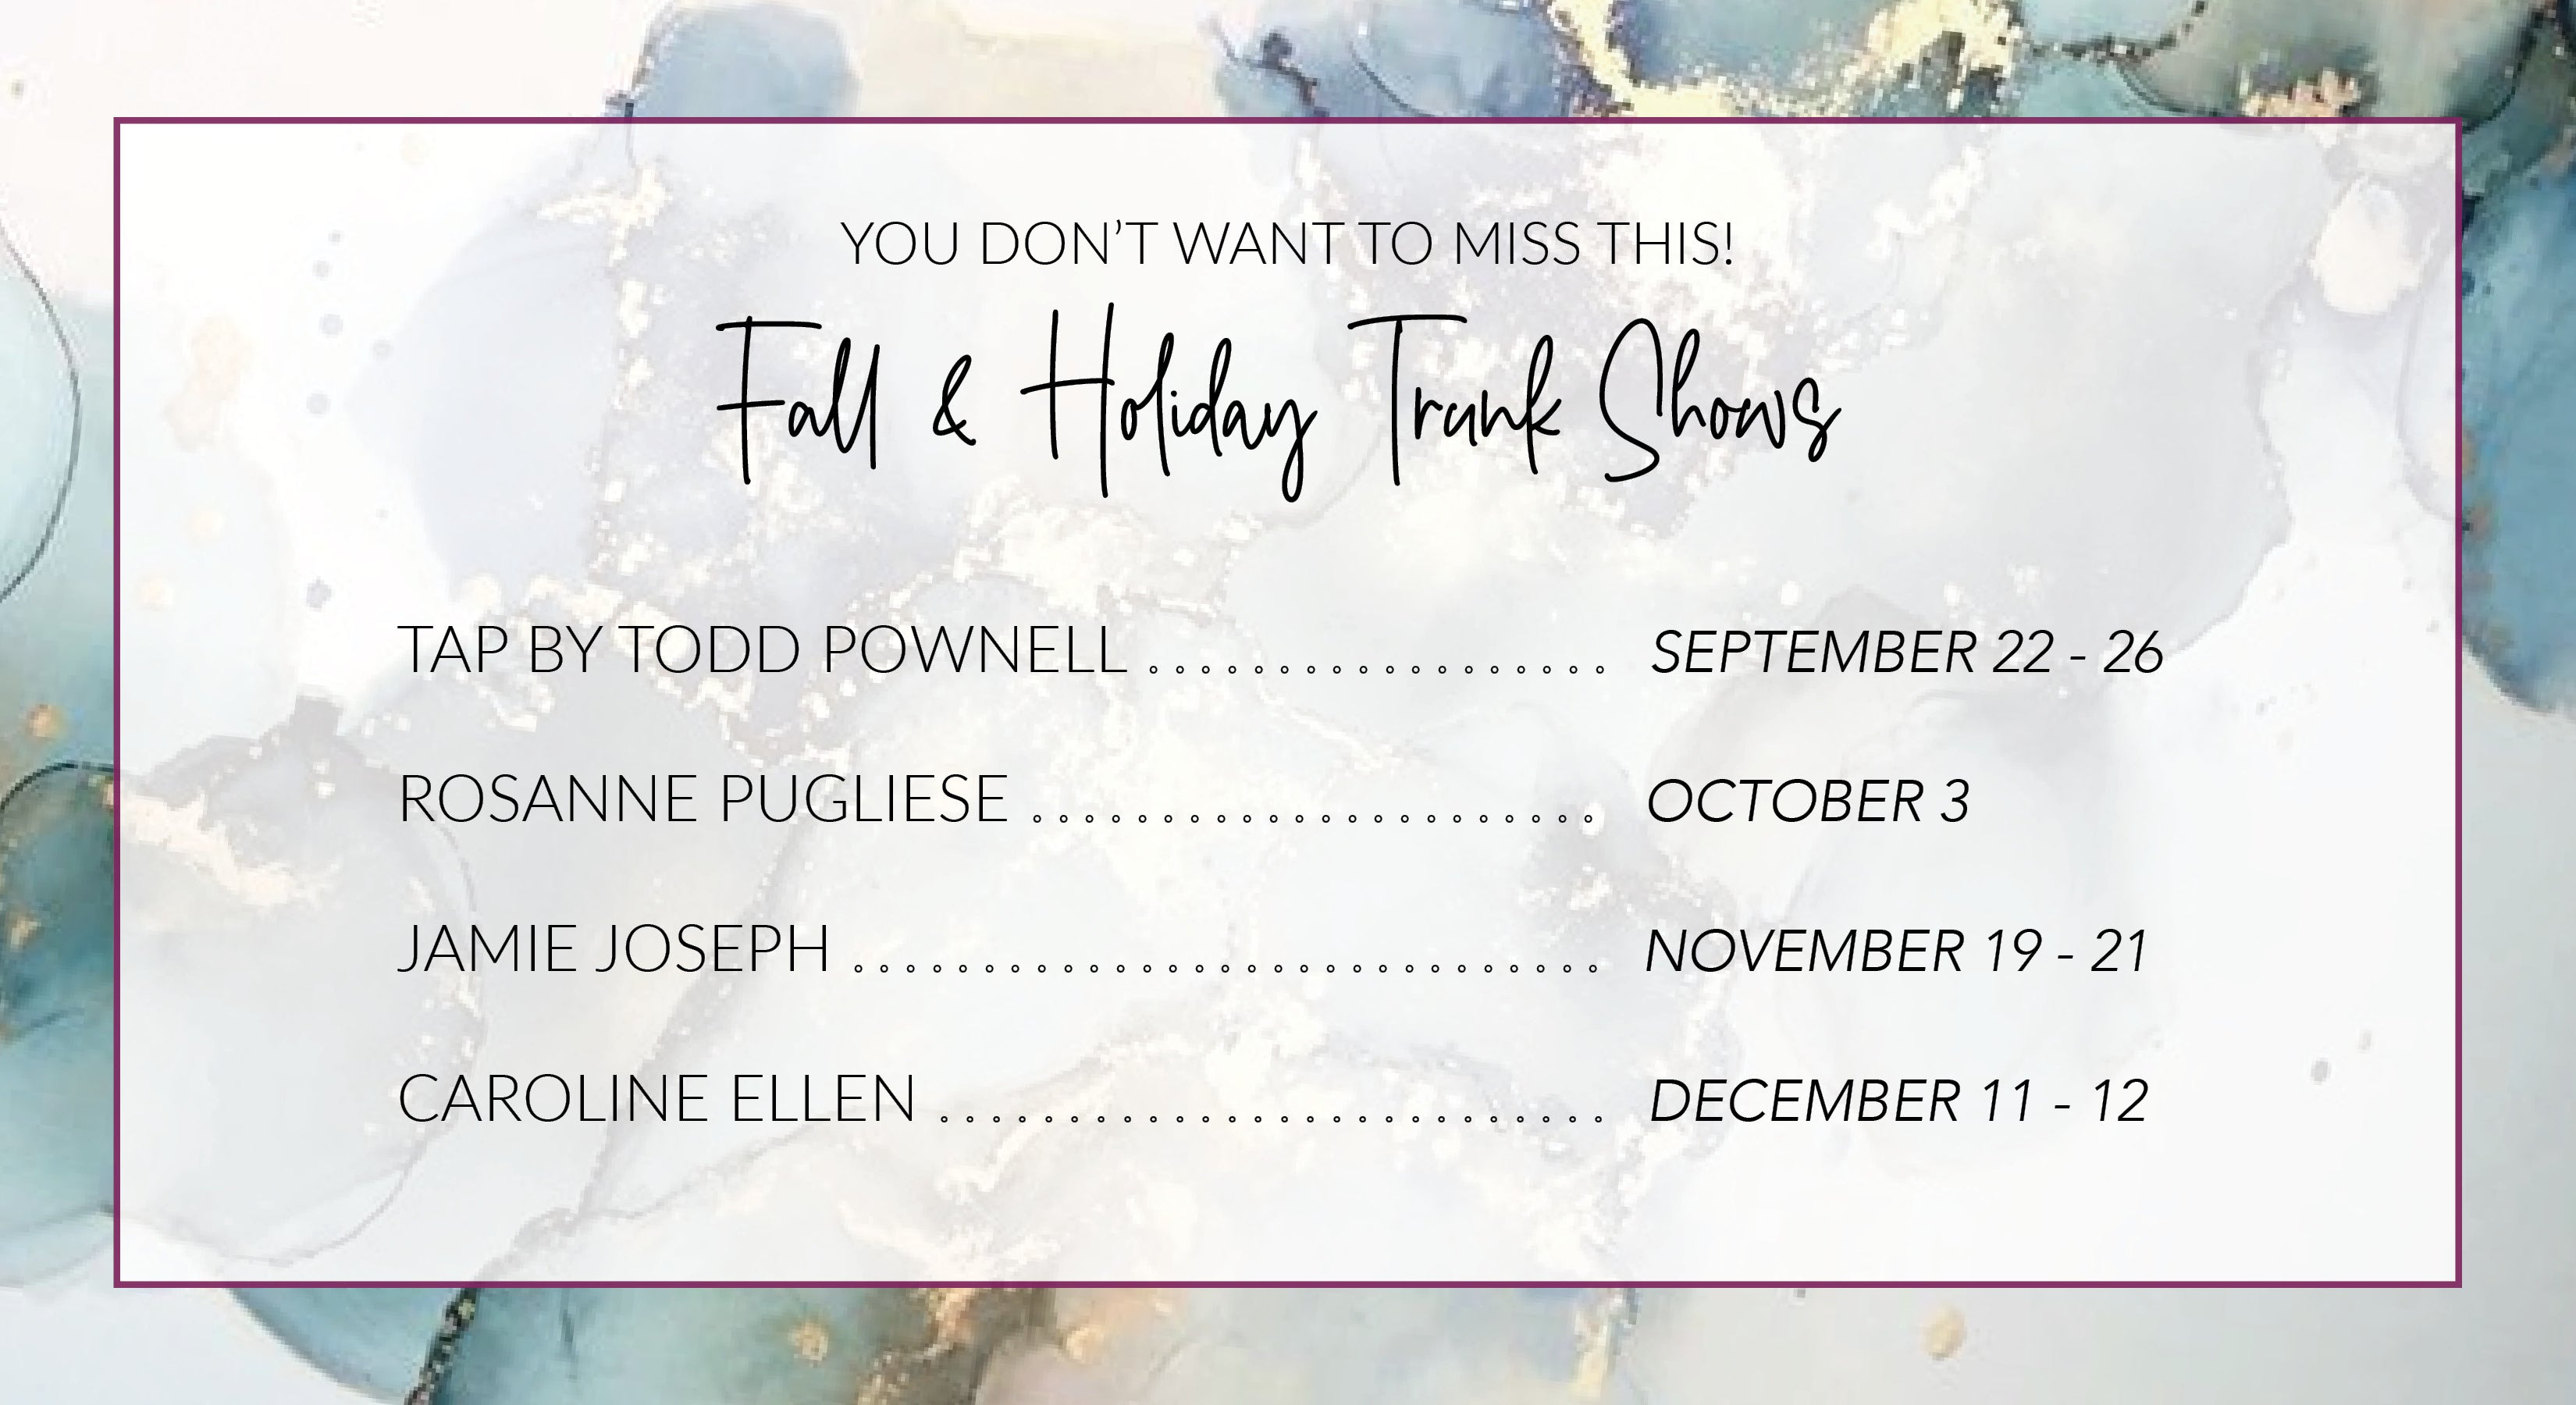 Fall & Holiday Trunk Show Schedule